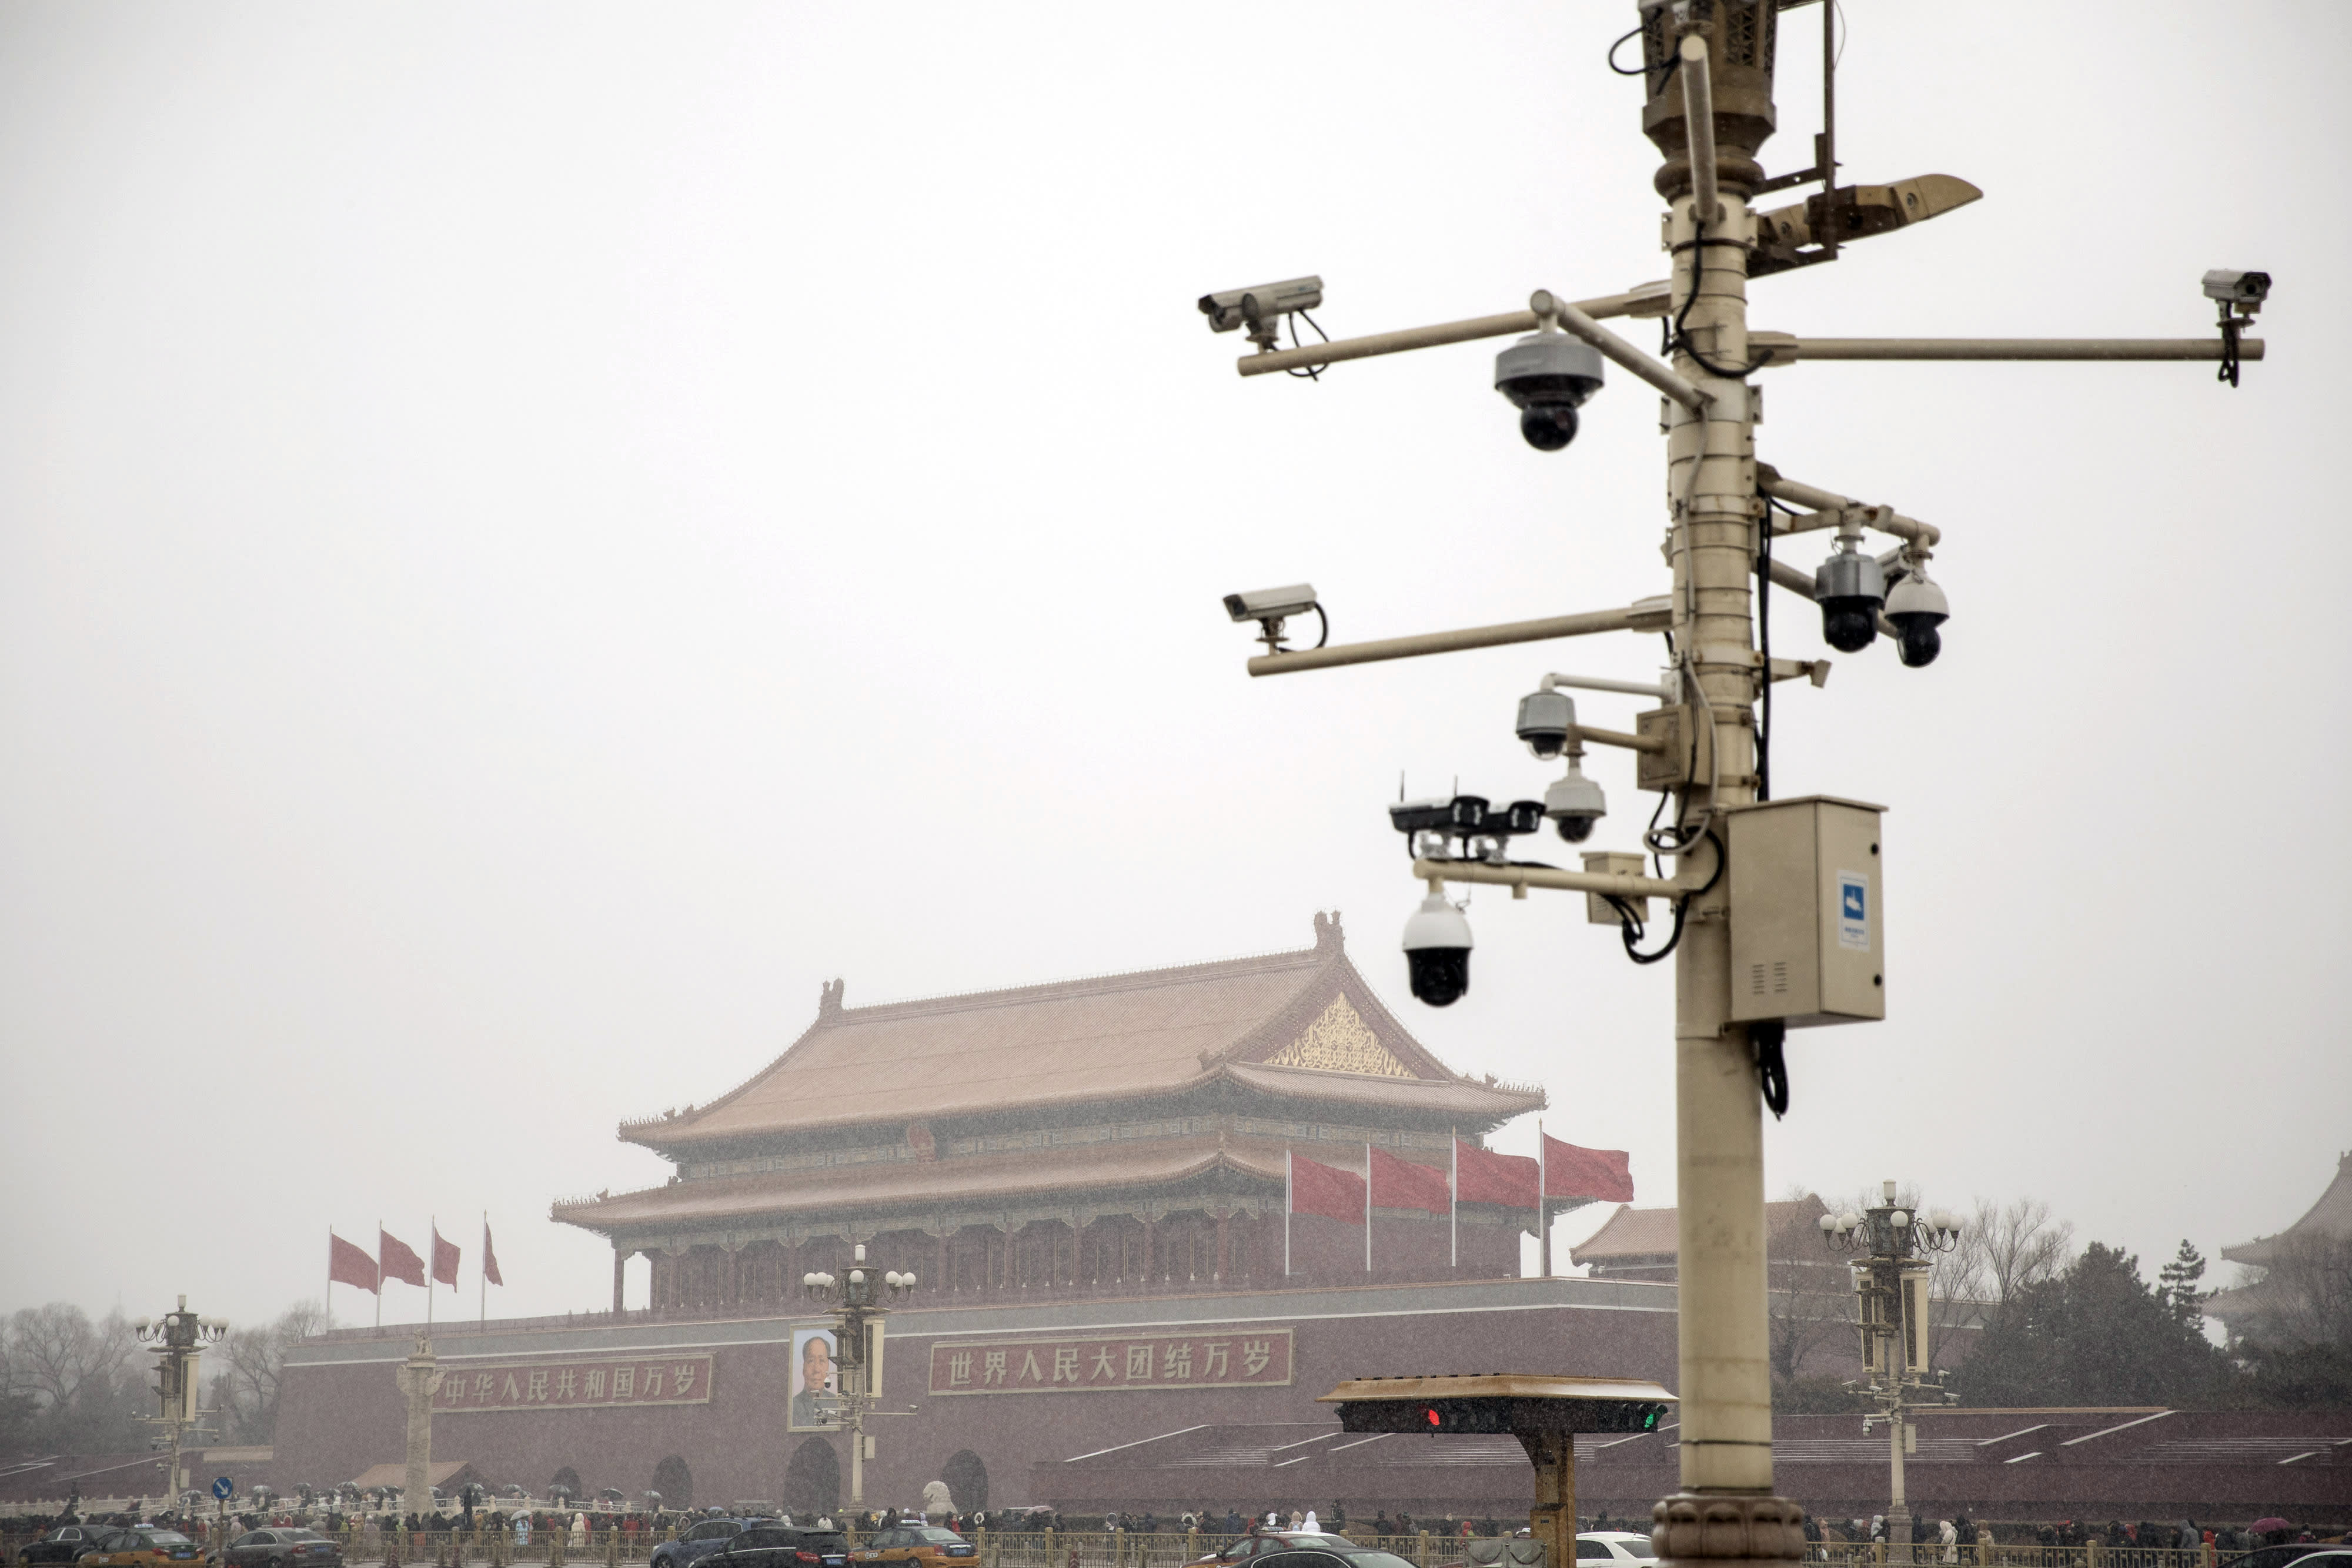 Surveillance cameras are mounted on a post at Tiananmen Square as snow falls in Beijing, China, on Thursday, Feb. 14, 2019.